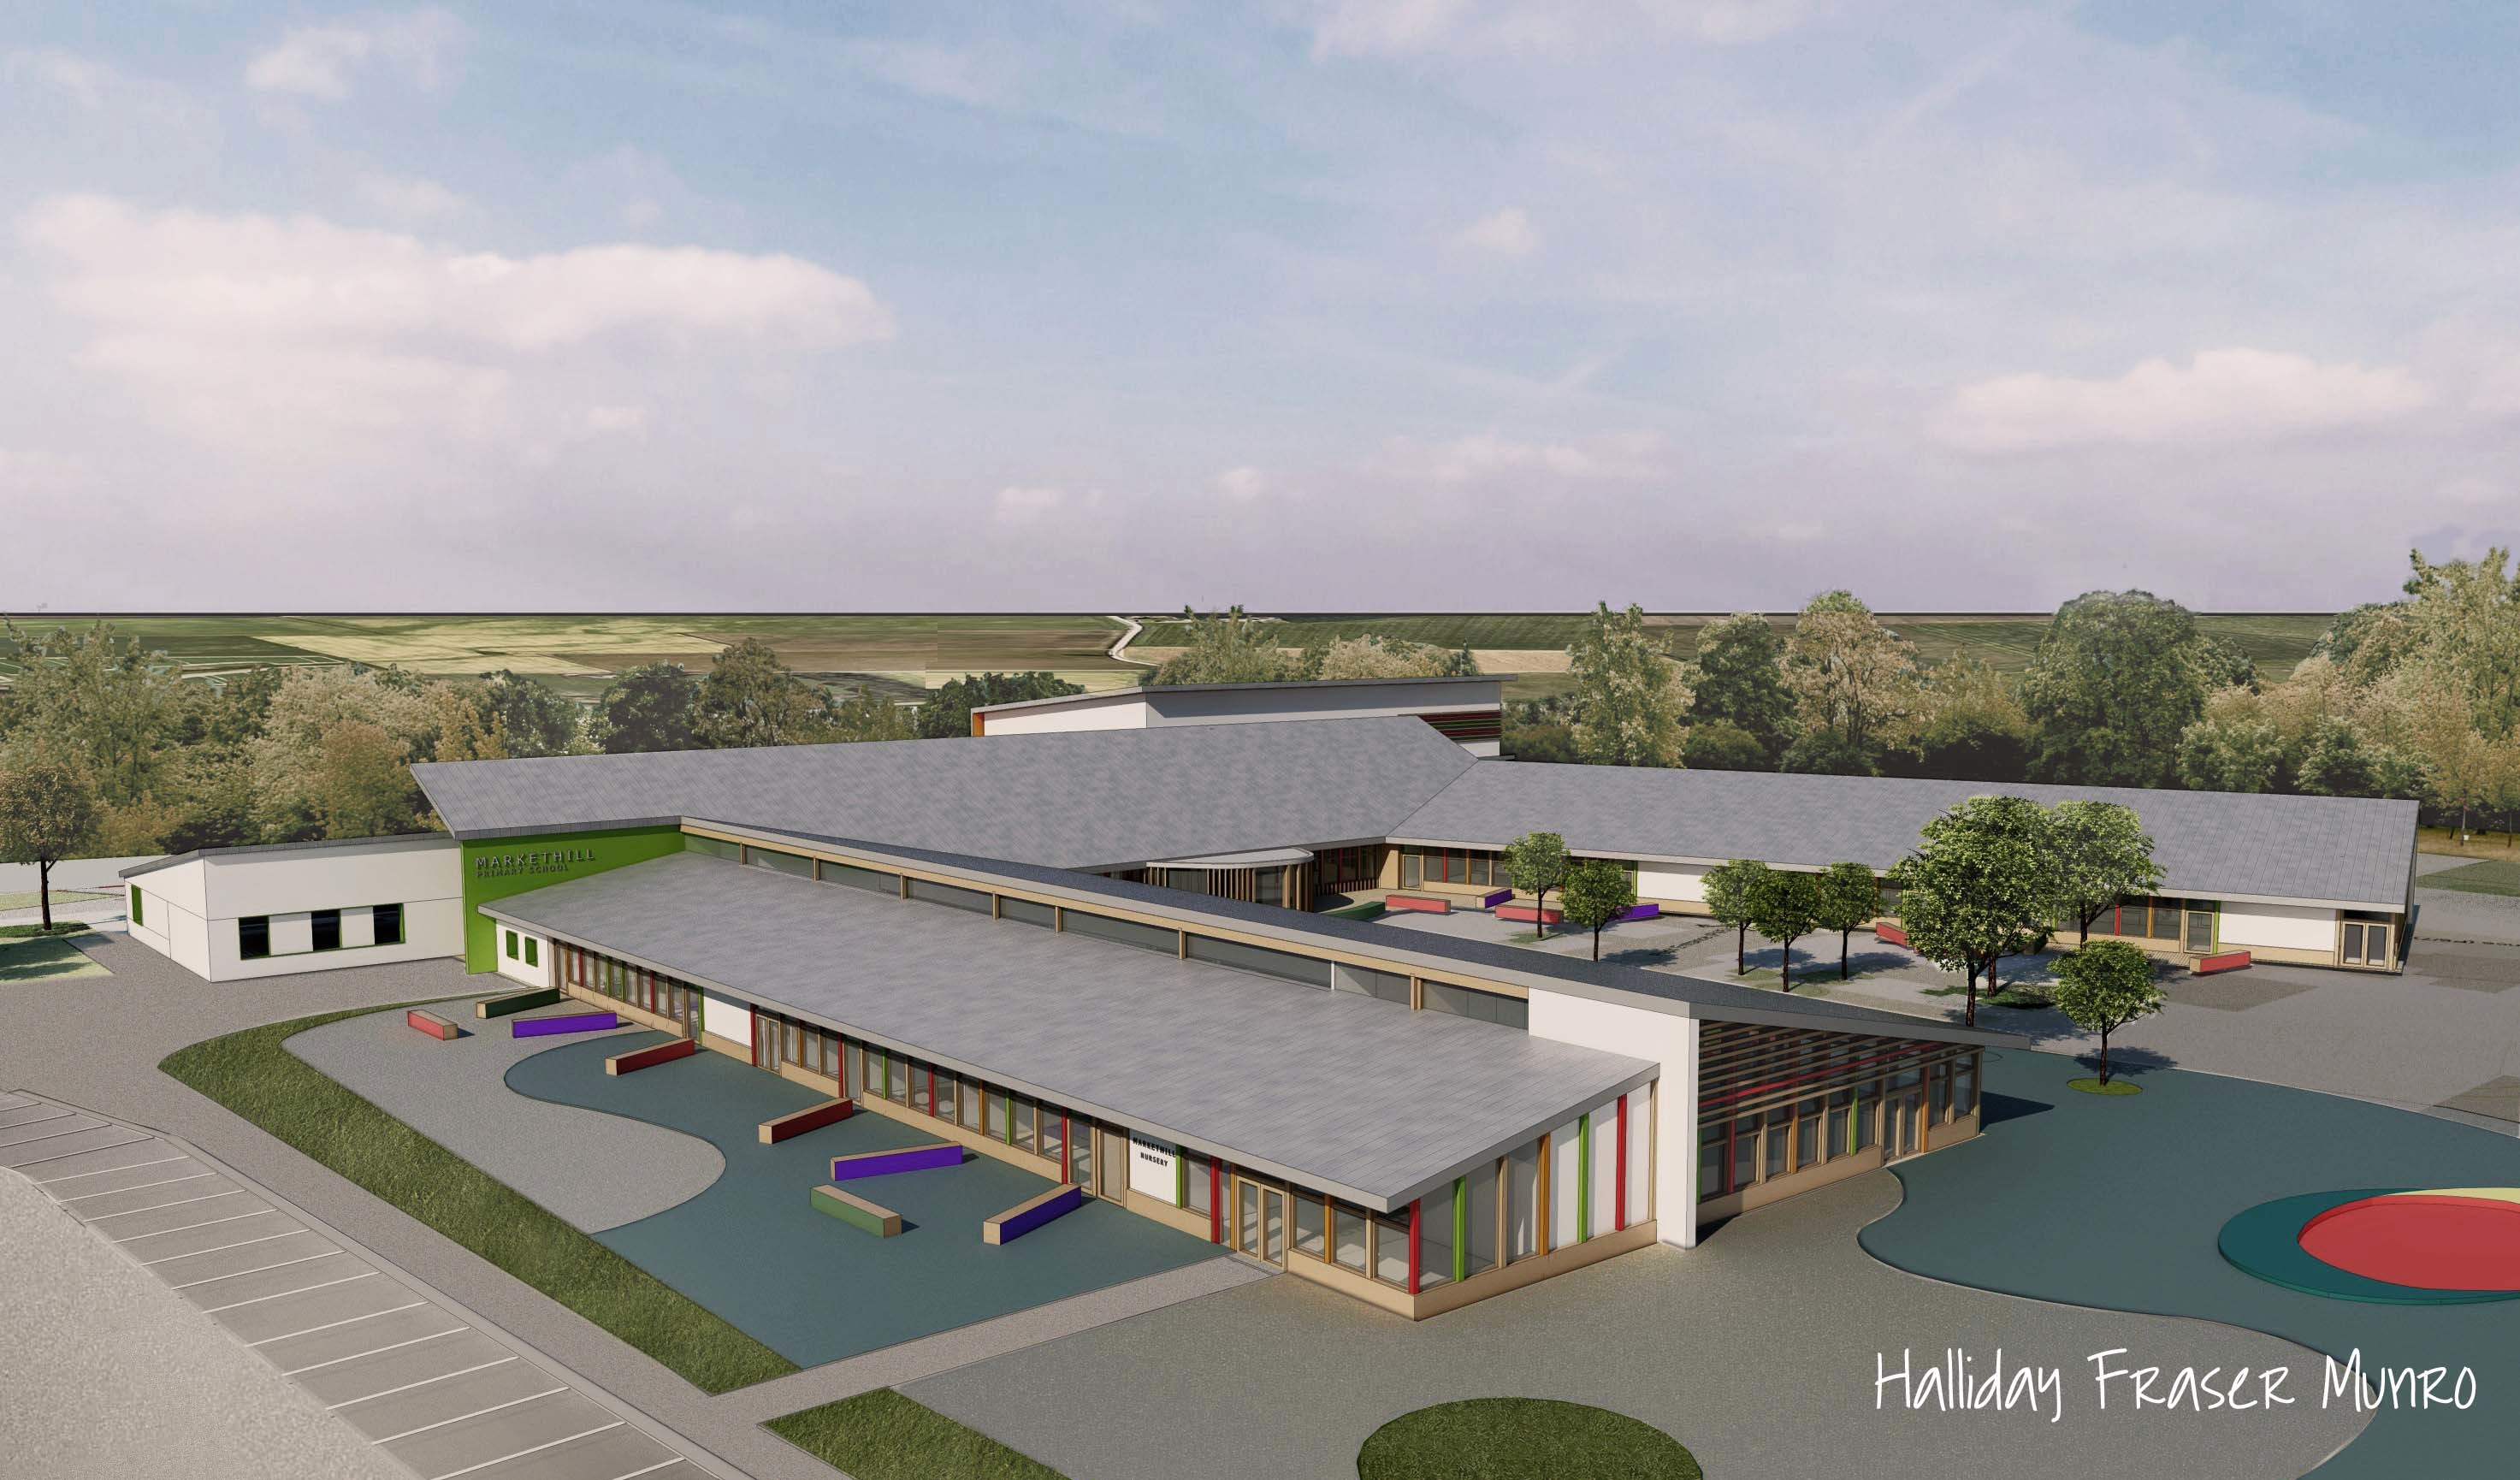 The plans for a new primary school